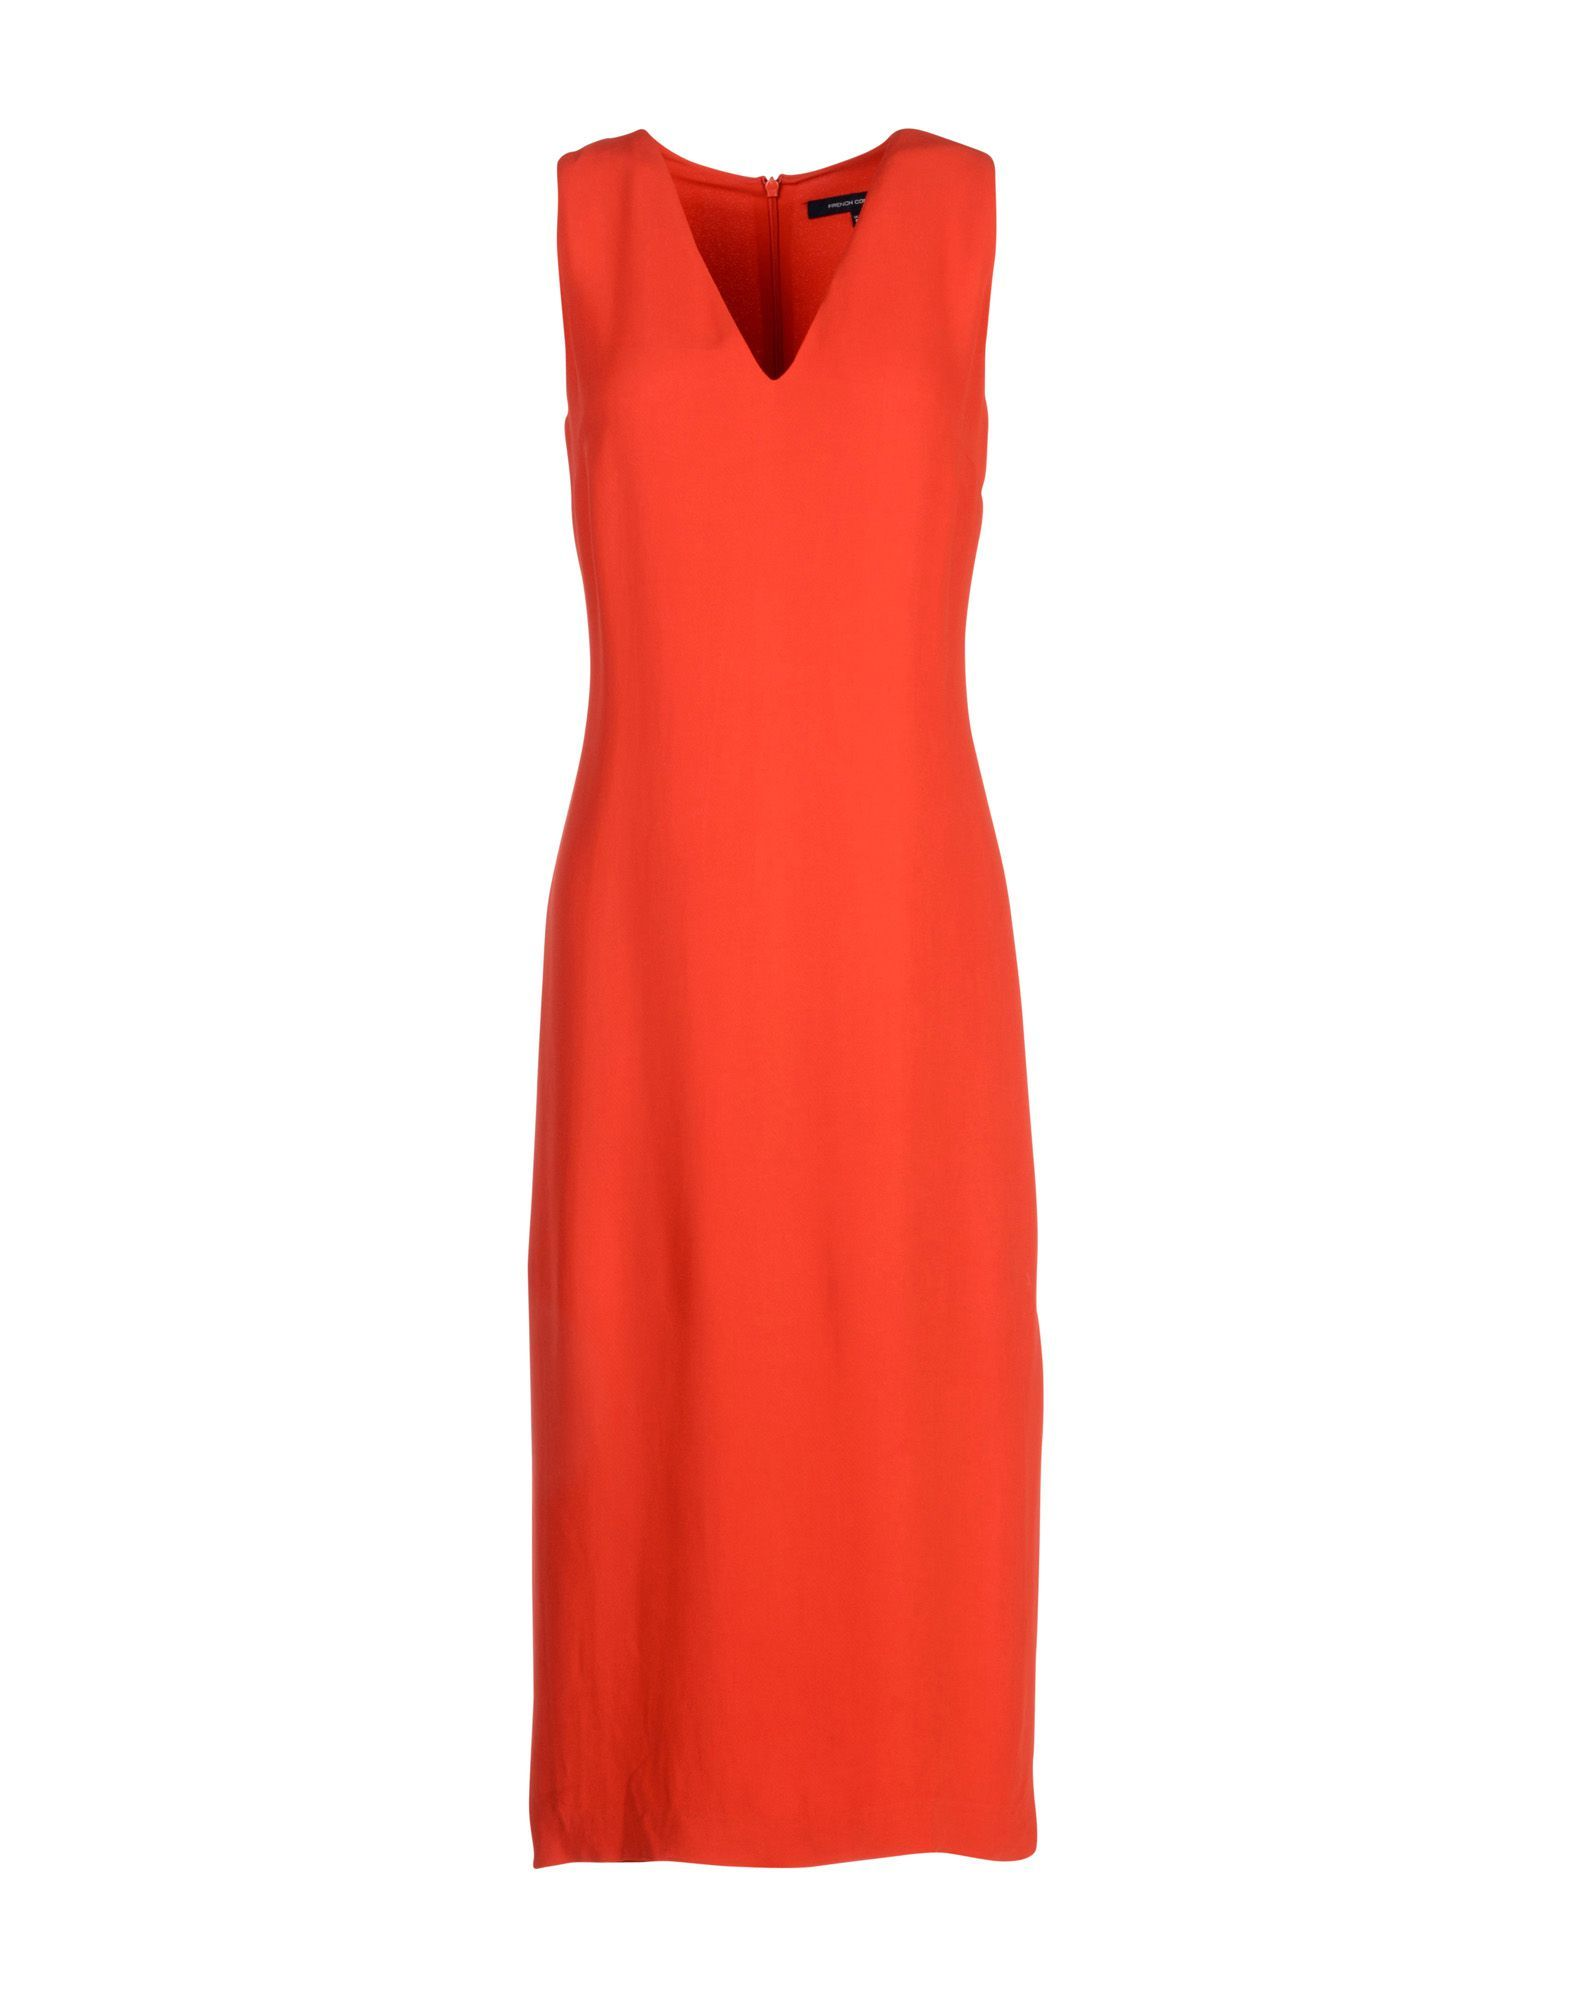 French Connection Red Crepe Sleeveless Dress